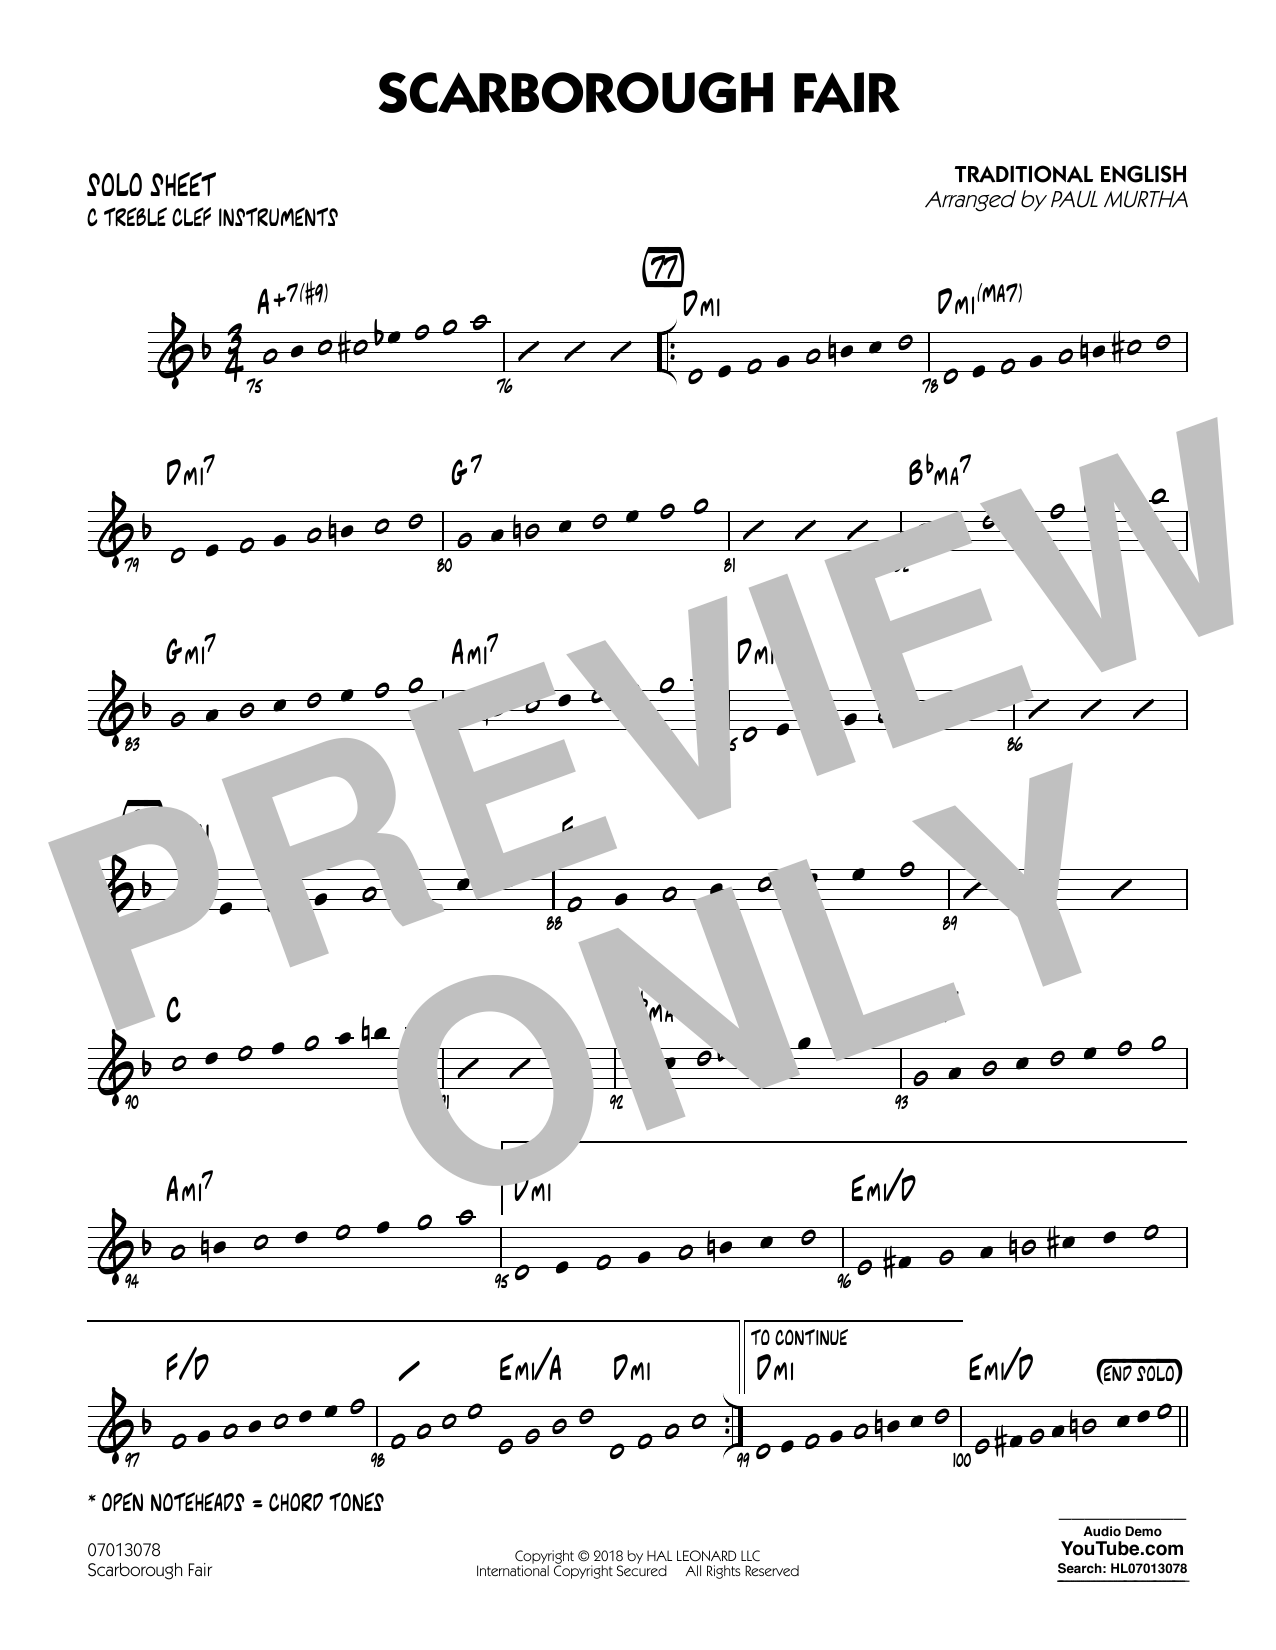 Paul Murtha Scarborough Fair - C Solo Sheet sheet music notes and chords. Download Printable PDF.